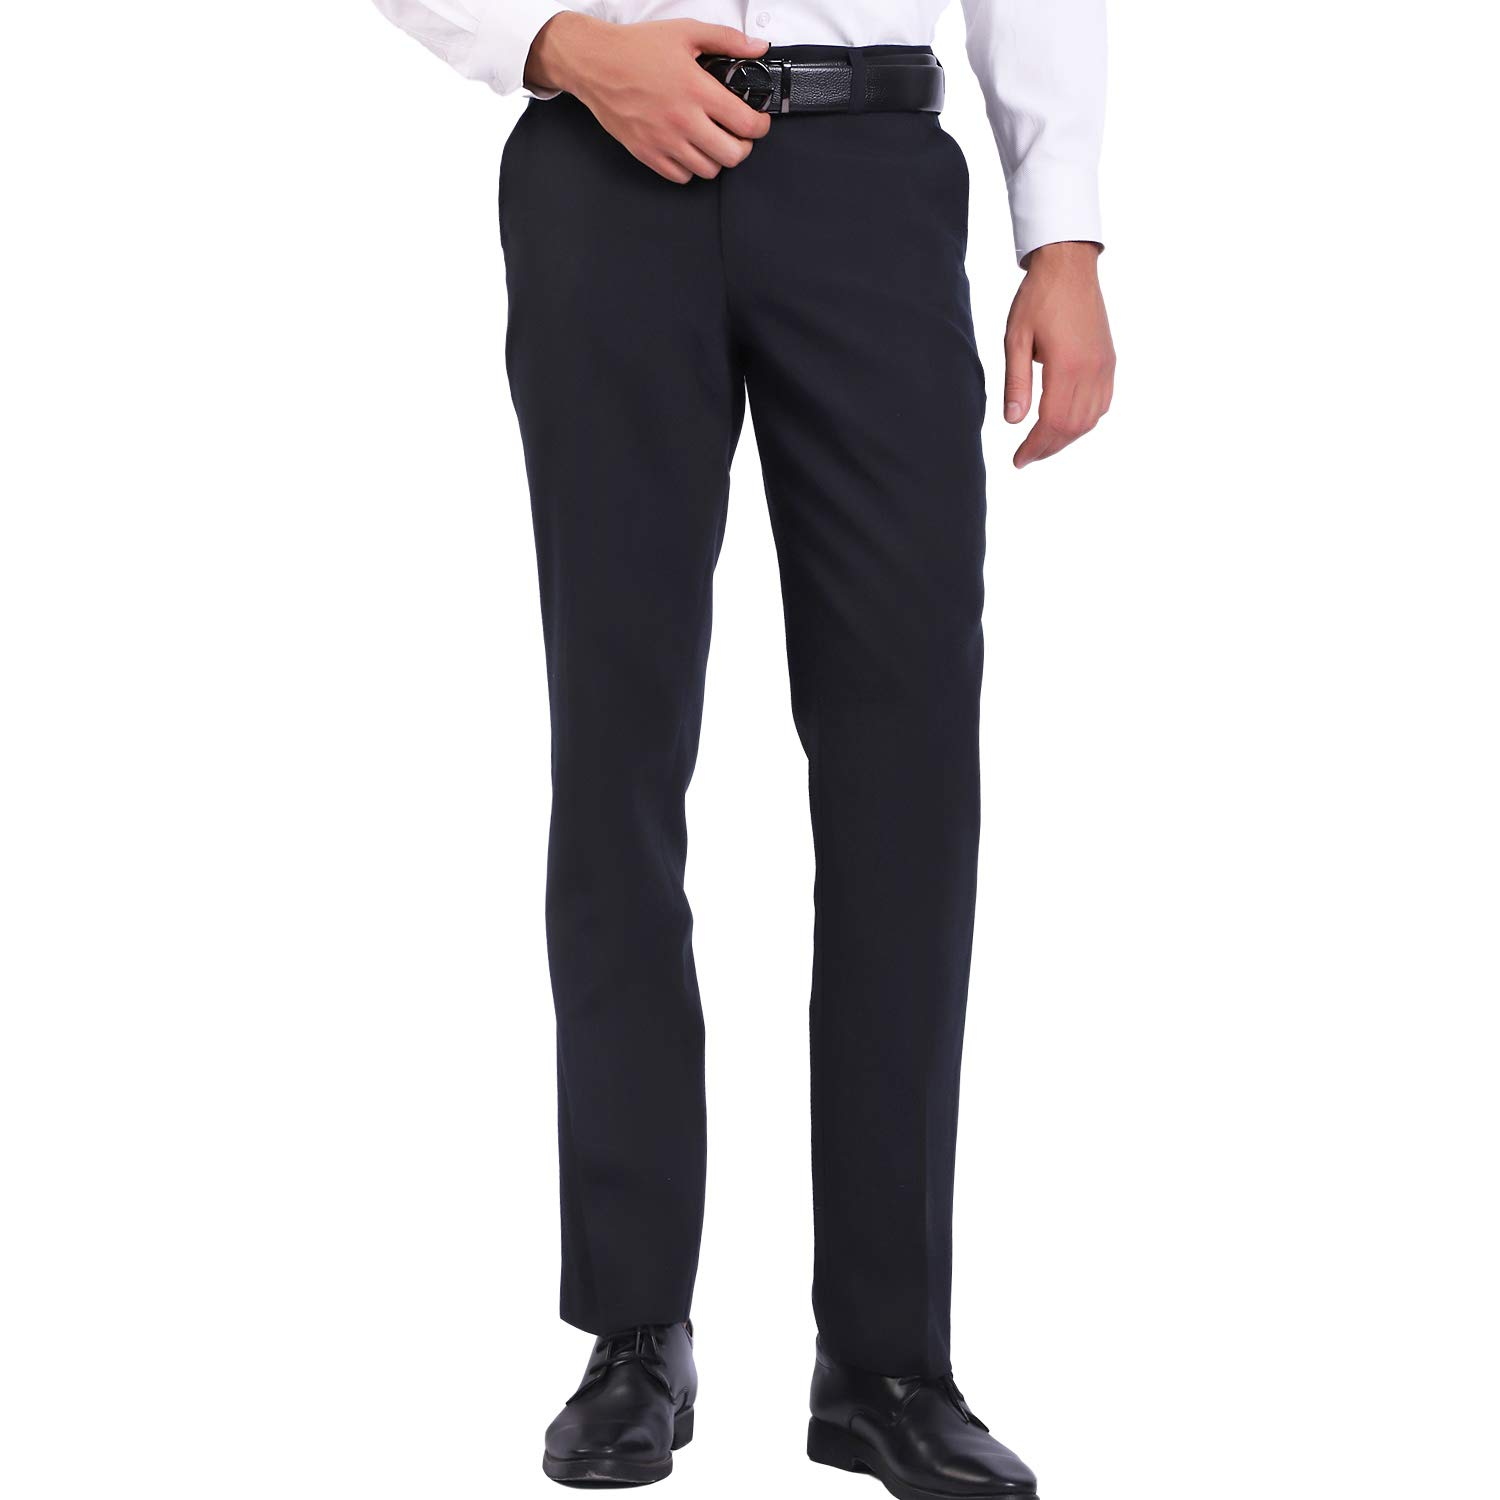 AIOUTAO Mens Dress Pants Slim Fit Black Trousers for Men Flat Front Flex Work Business Casual Pant Boys